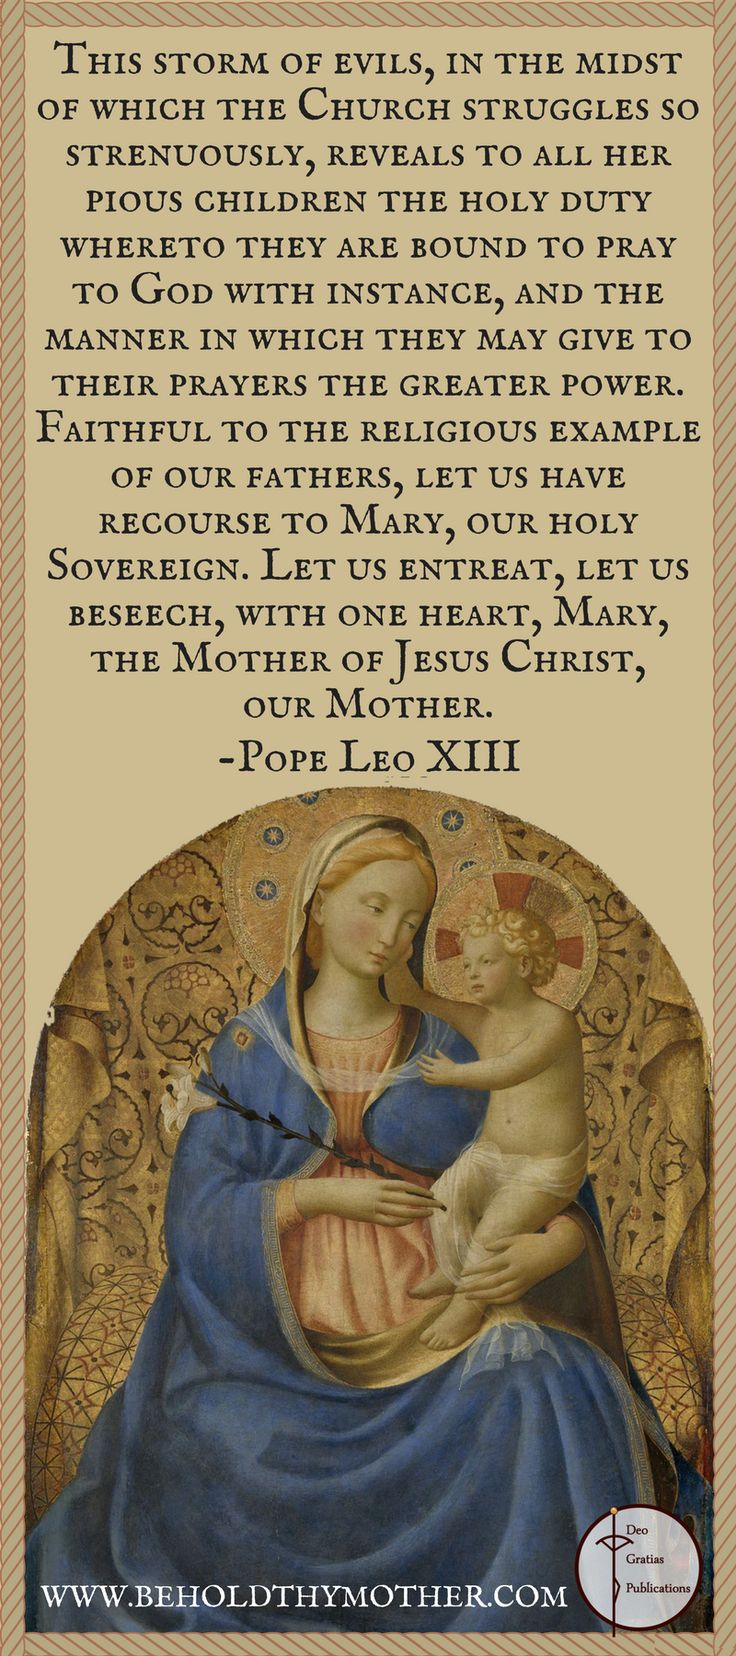 """Behold Thy Mother"", a Scriptural Rosary book, is steeped in beauty and tradition with sacred art, meditations by Church fathers, popes, saints and esteemed Catholic theologians, a side by side English/Latin translation of the Scripture verses, and medieval graphics. This beautiful Catholic prayer book is stamped with an imprimatur by Most Reverend Peter F. Christensen, Bishop of the Diocese of Boise and has received 5 star reviews. This painting by Fra Angelico is titled ""Madonna of…"